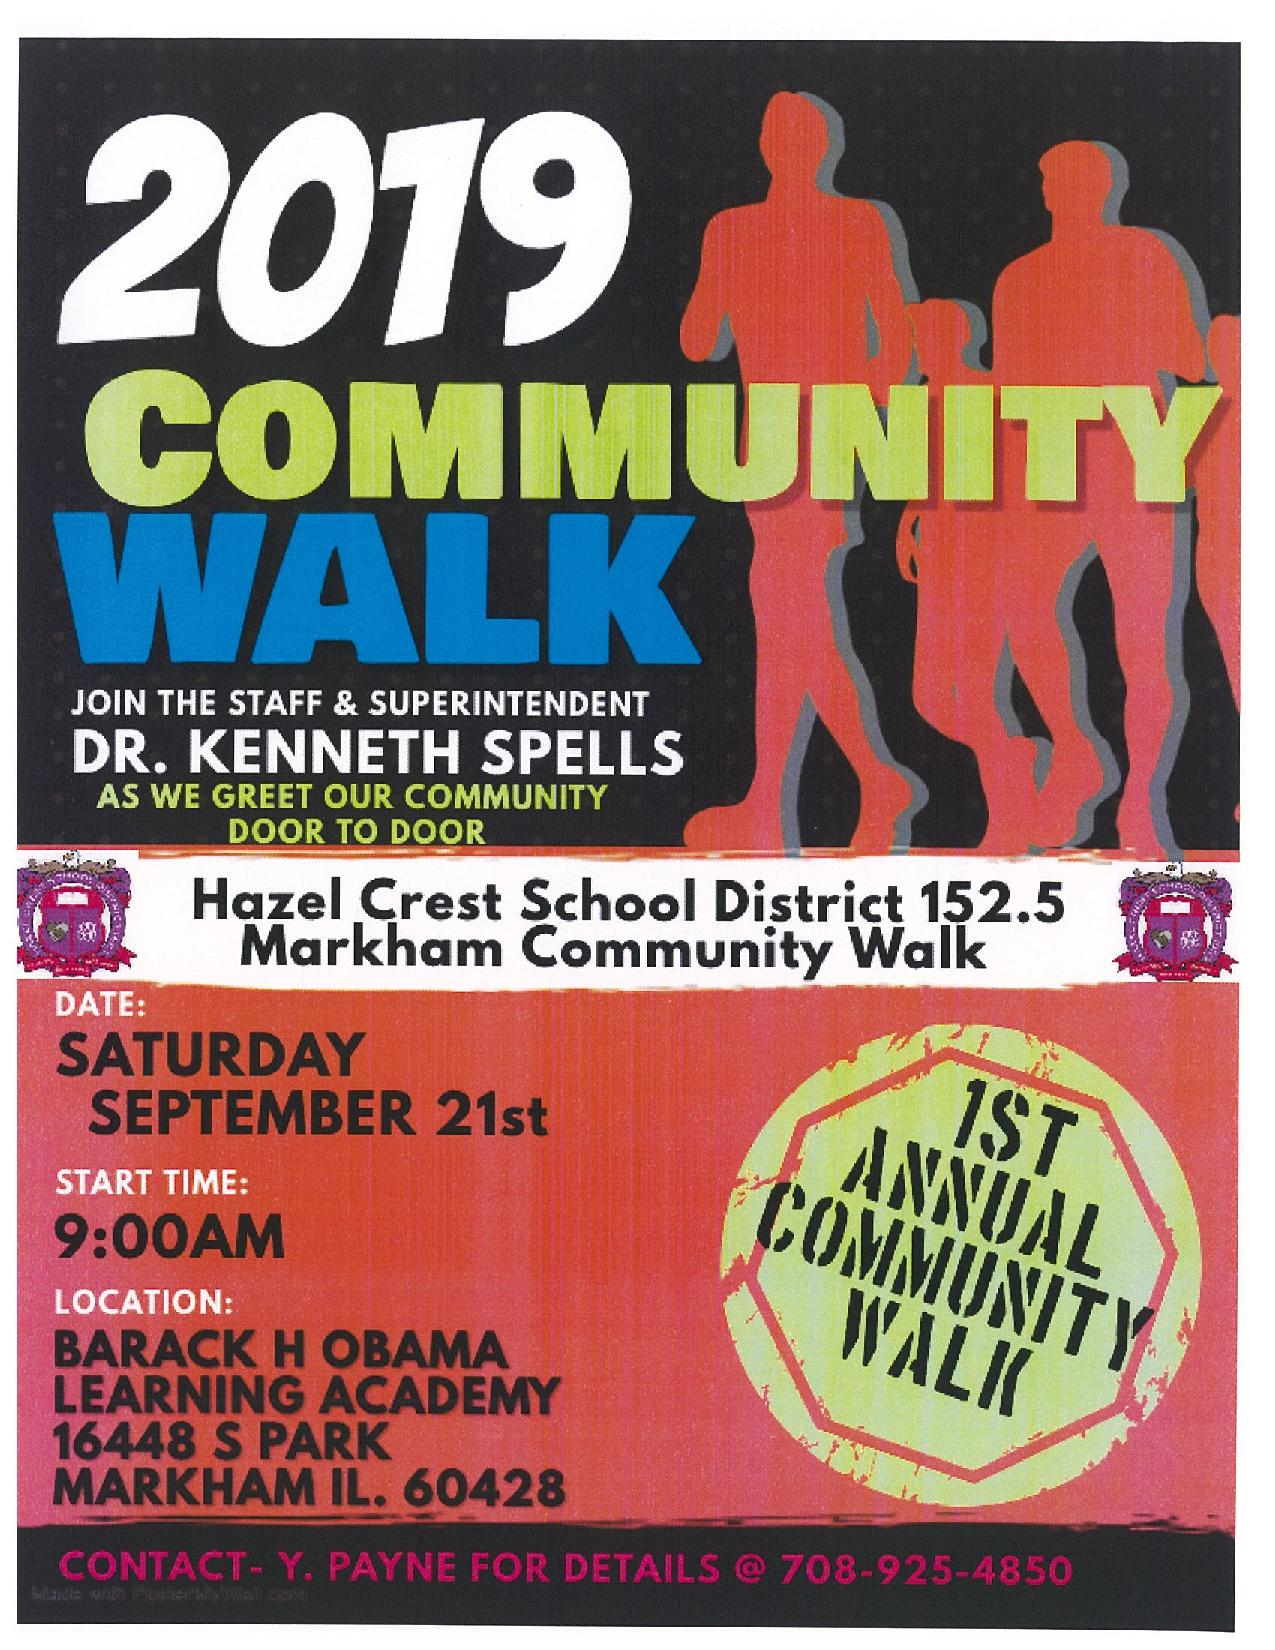 2019 COMMUNITY WALK FLYER